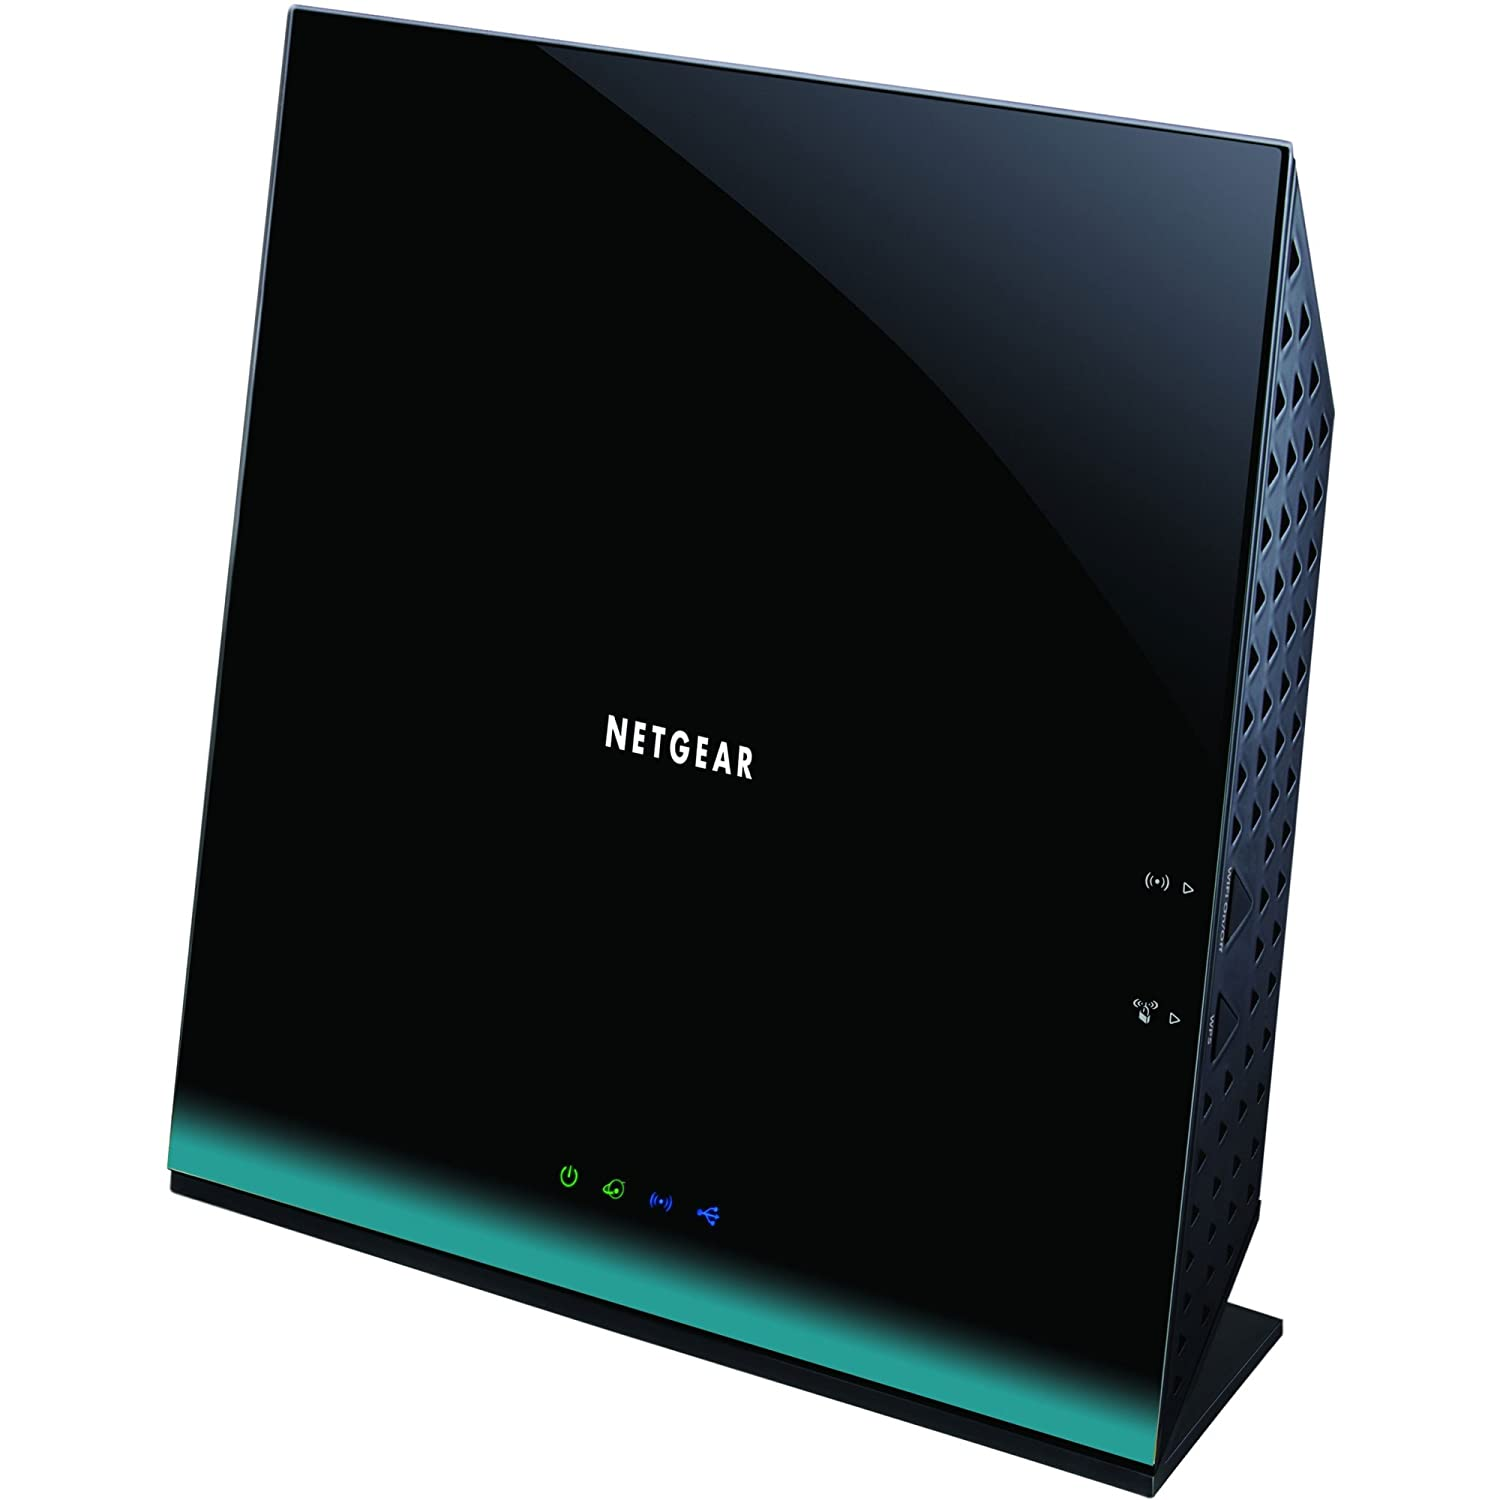 Netgear R6100-100PAS R6100 Wireless Router - IEEE 802.11ac ISM Band - UNII Band - 54 Mbps Wireless Speed wi fi роутер netgear r6100 r6100 100pes